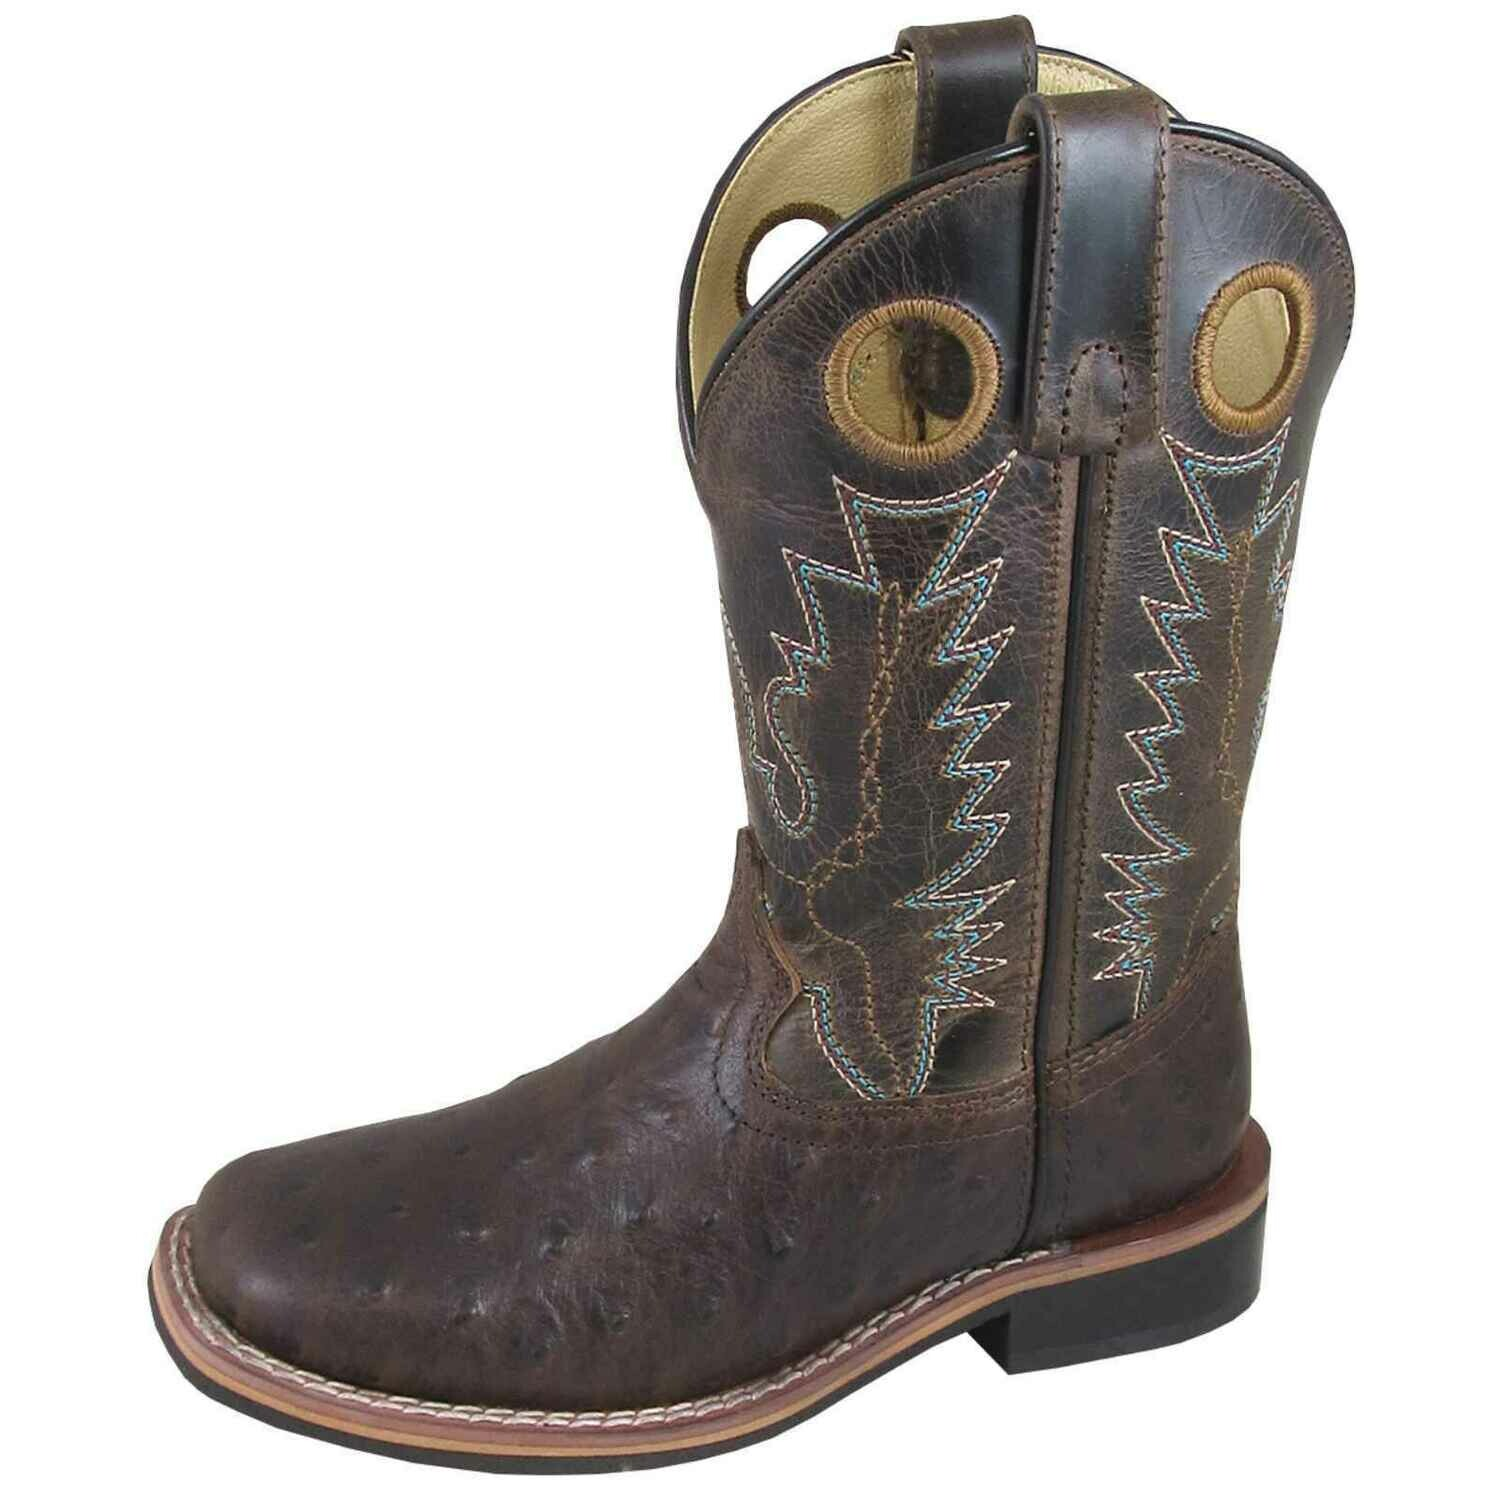 3751C SMOKY TOBACCO BROWN CHEYENNE